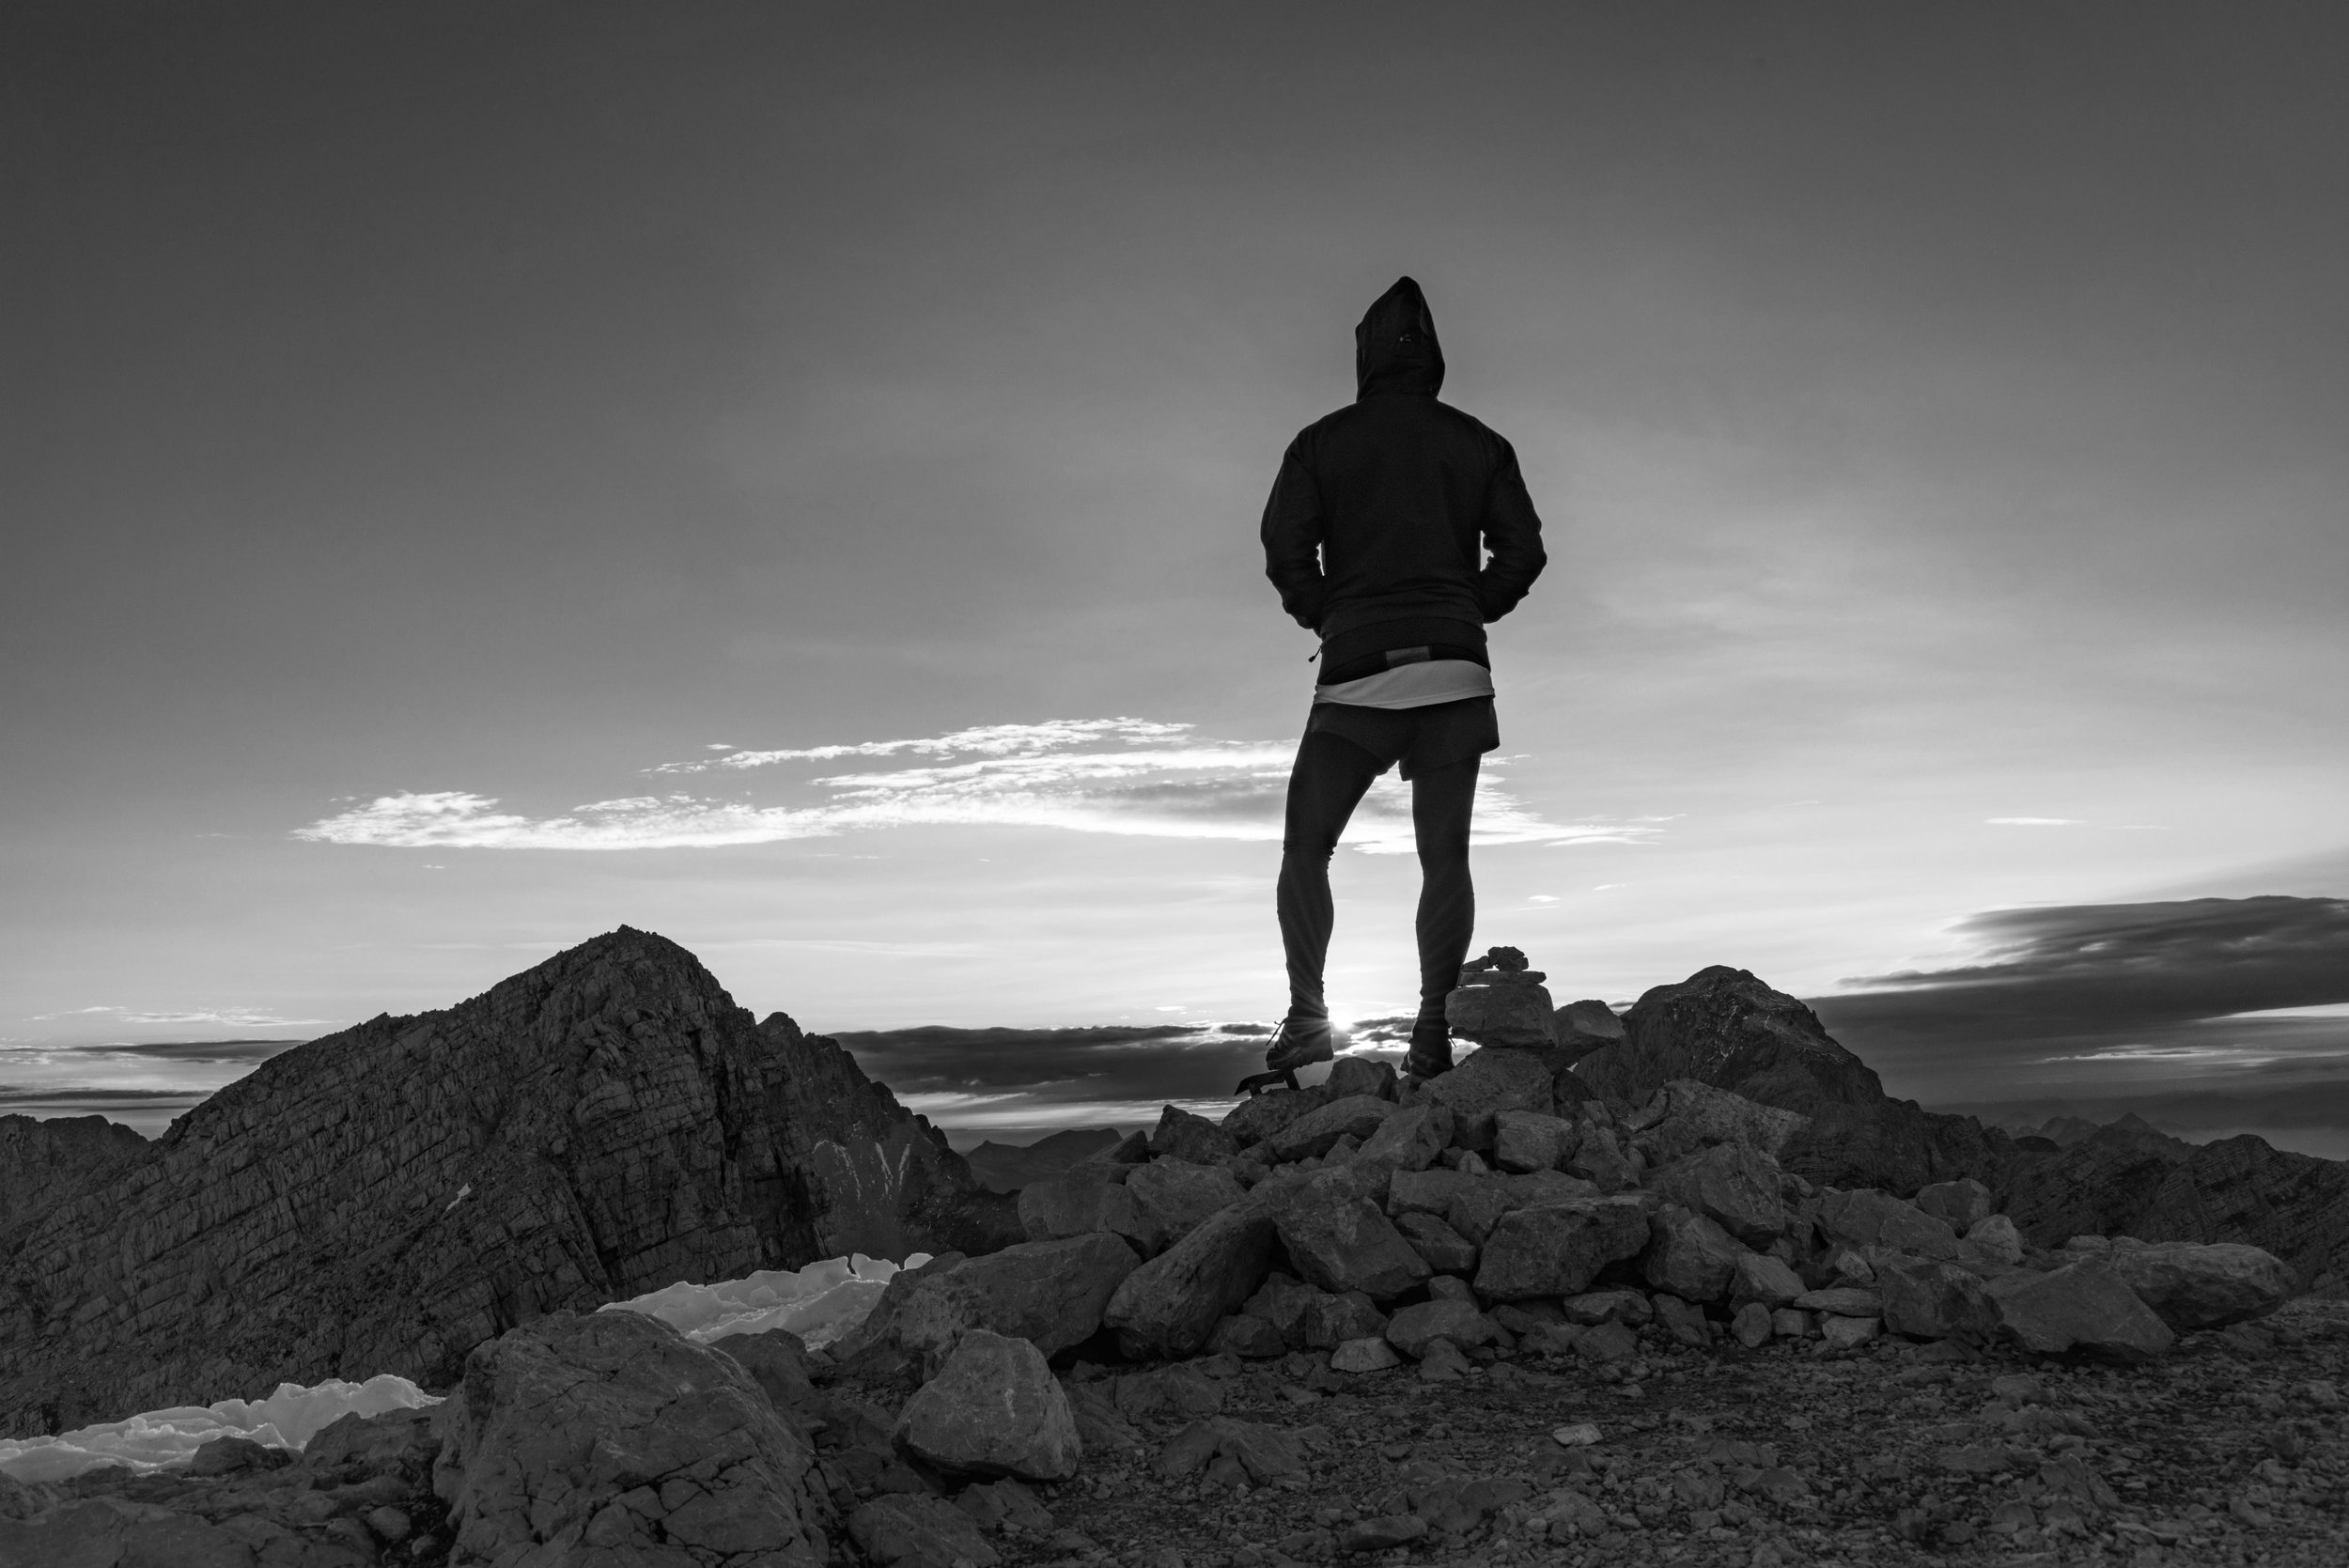 BW_Man ontop of Montain at daybreak pexels-photo-551852.jpg